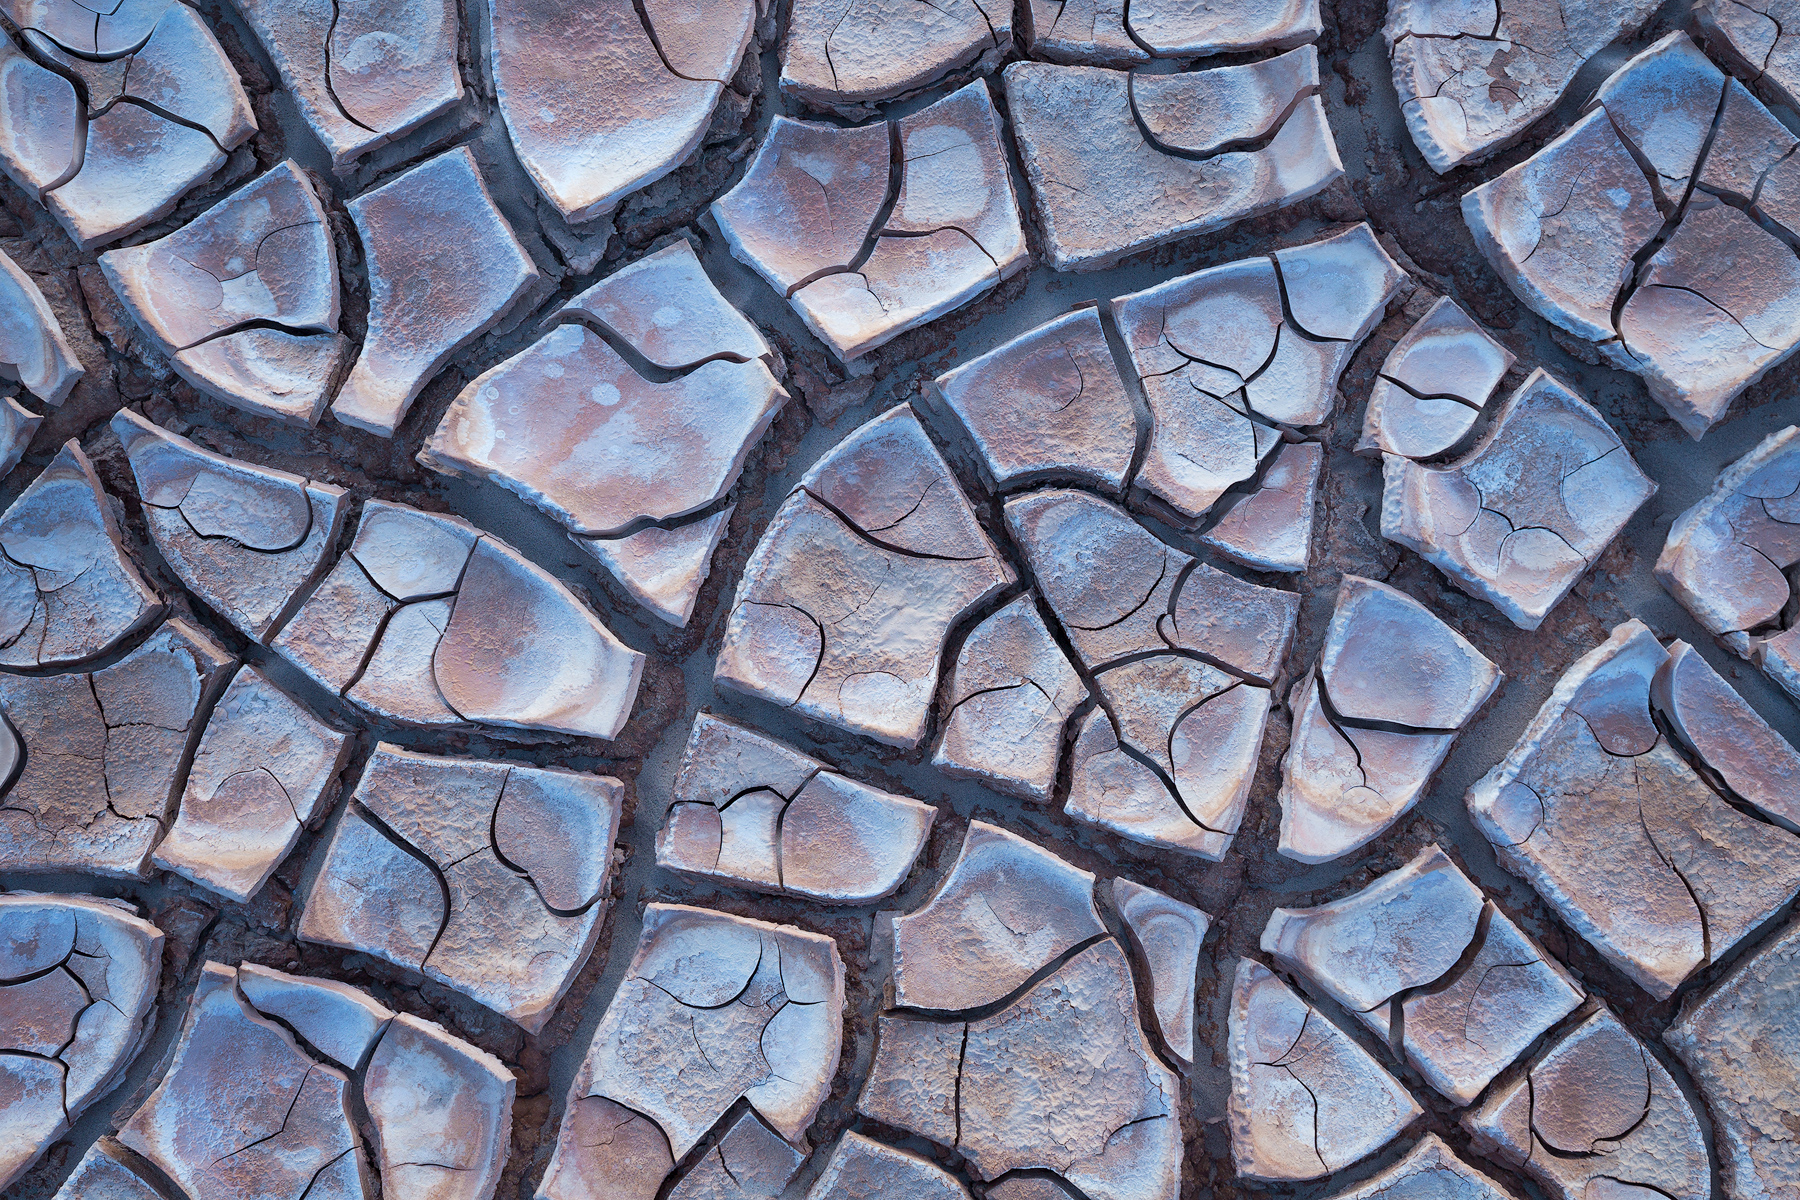 Cracked mud, Death Valley National Park. This small patch of cracked mud is located in a very expansive area with few navigational aids. Saving the GPS coordinates for this spot as a Gaia waypoint, along with a photo, makes returning to this exact location easy.